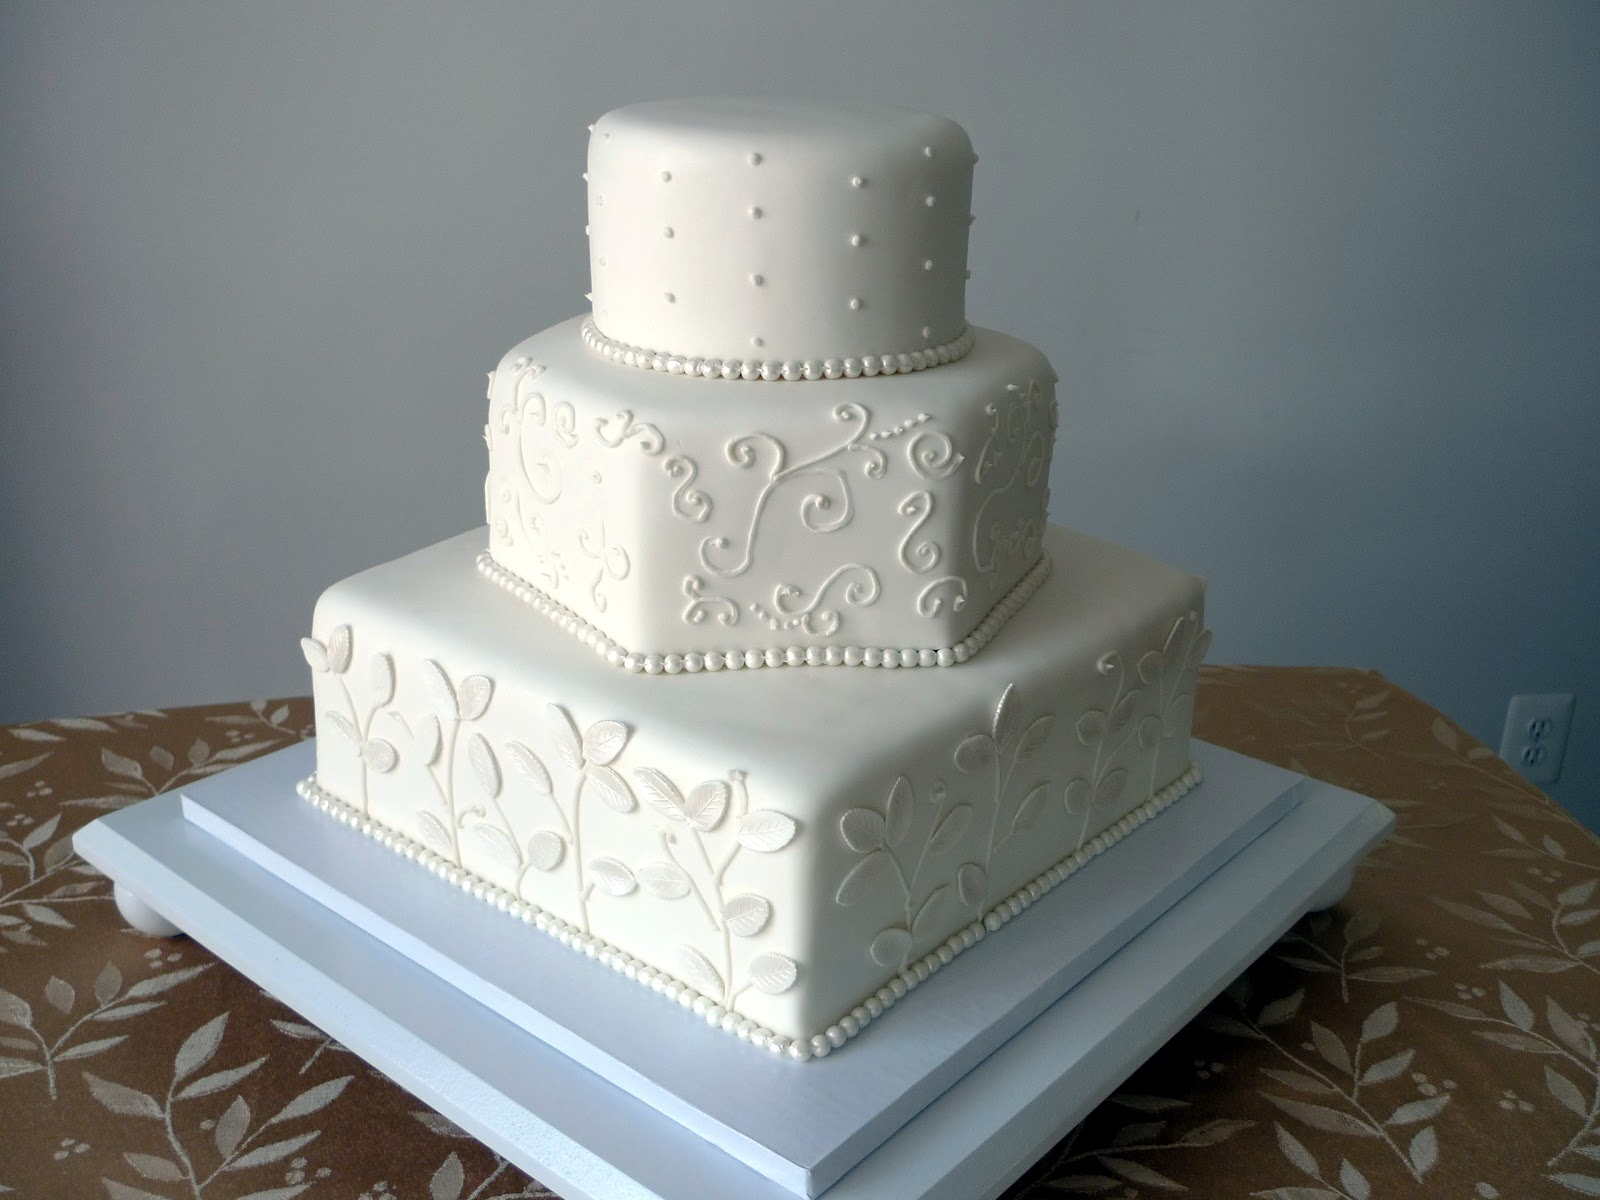 Cake Designs For Wedding : Cakebee: Elegant Black & White Wedding Cakes